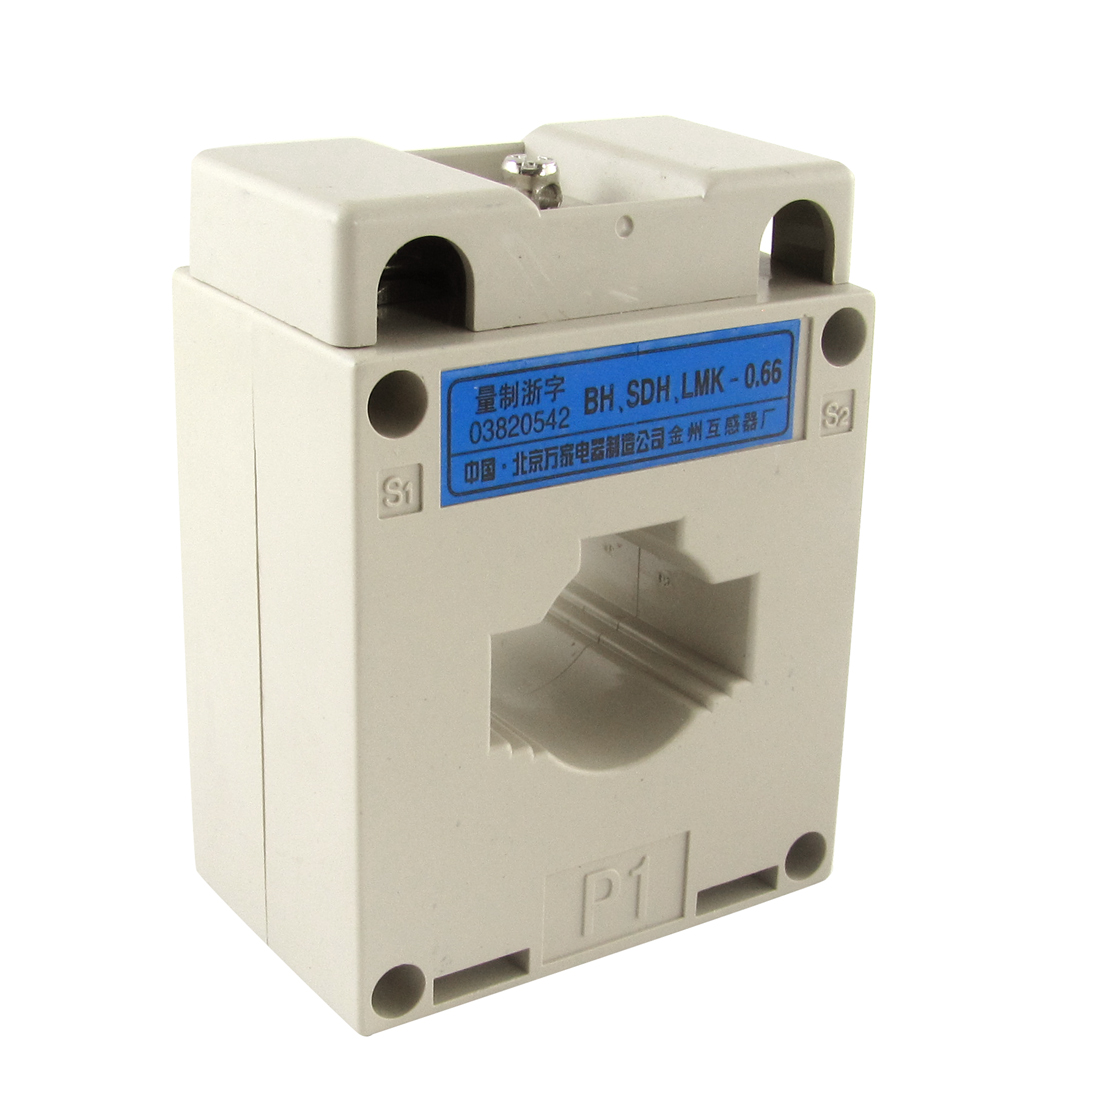 0.66KV 50/60Hz 0.5 Accuracy Class 30/5 Current Transformer 5T